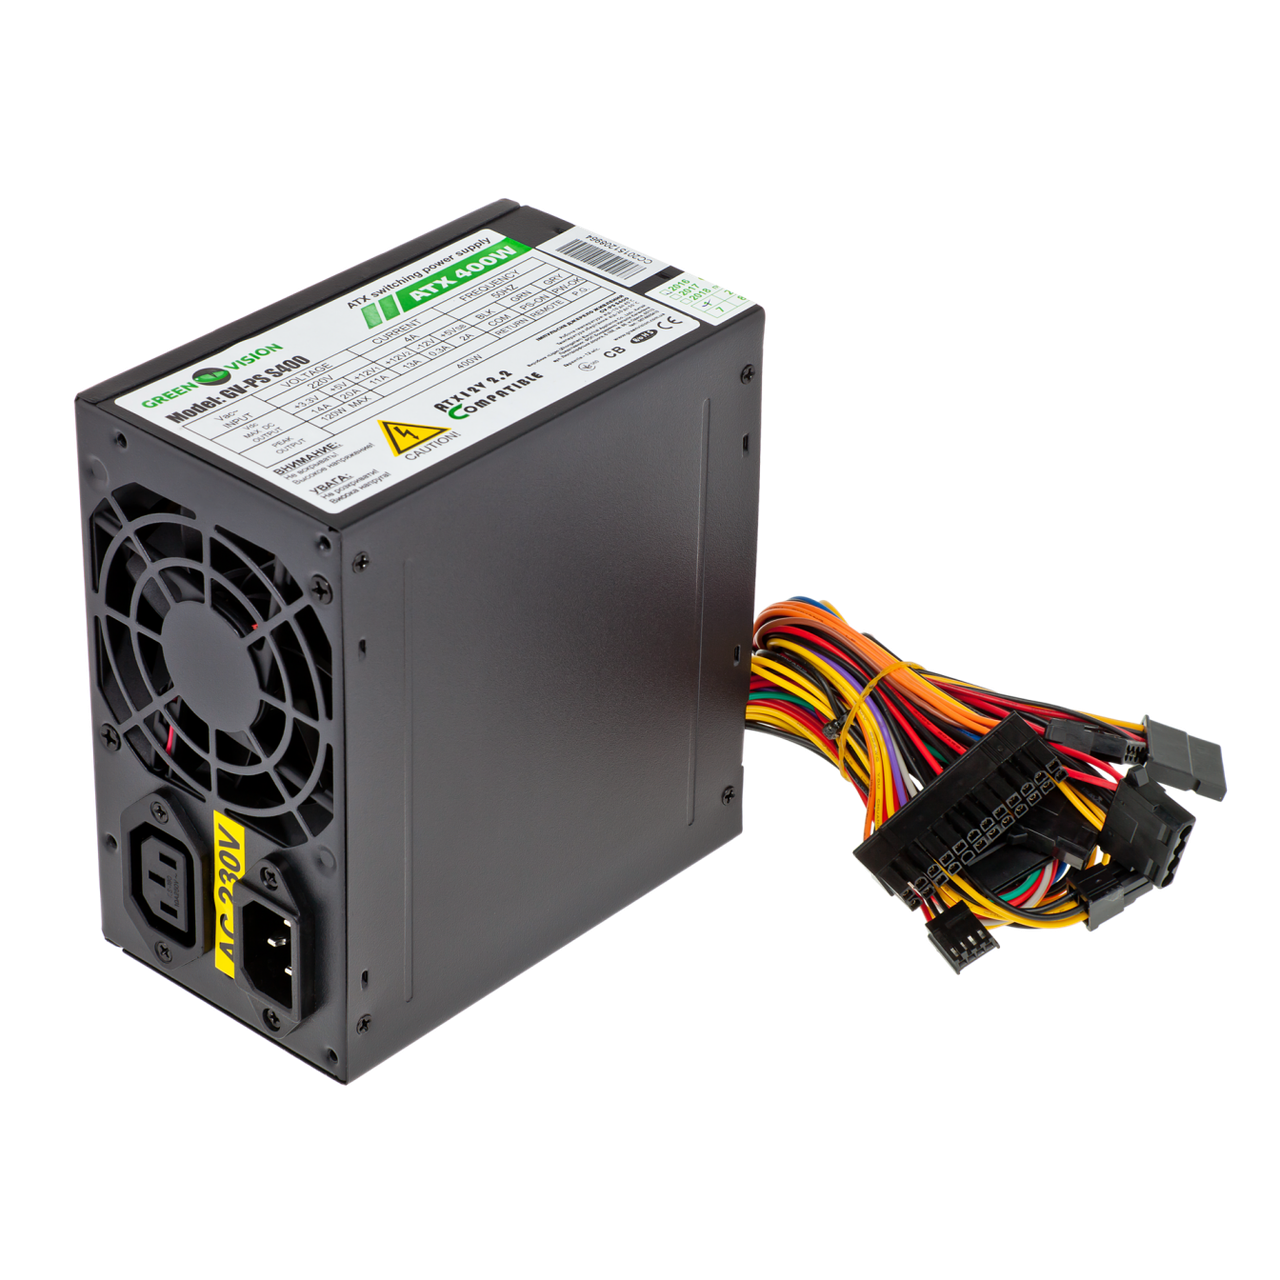 Блок питания GreenVision ATX 400W, fan 8см, black